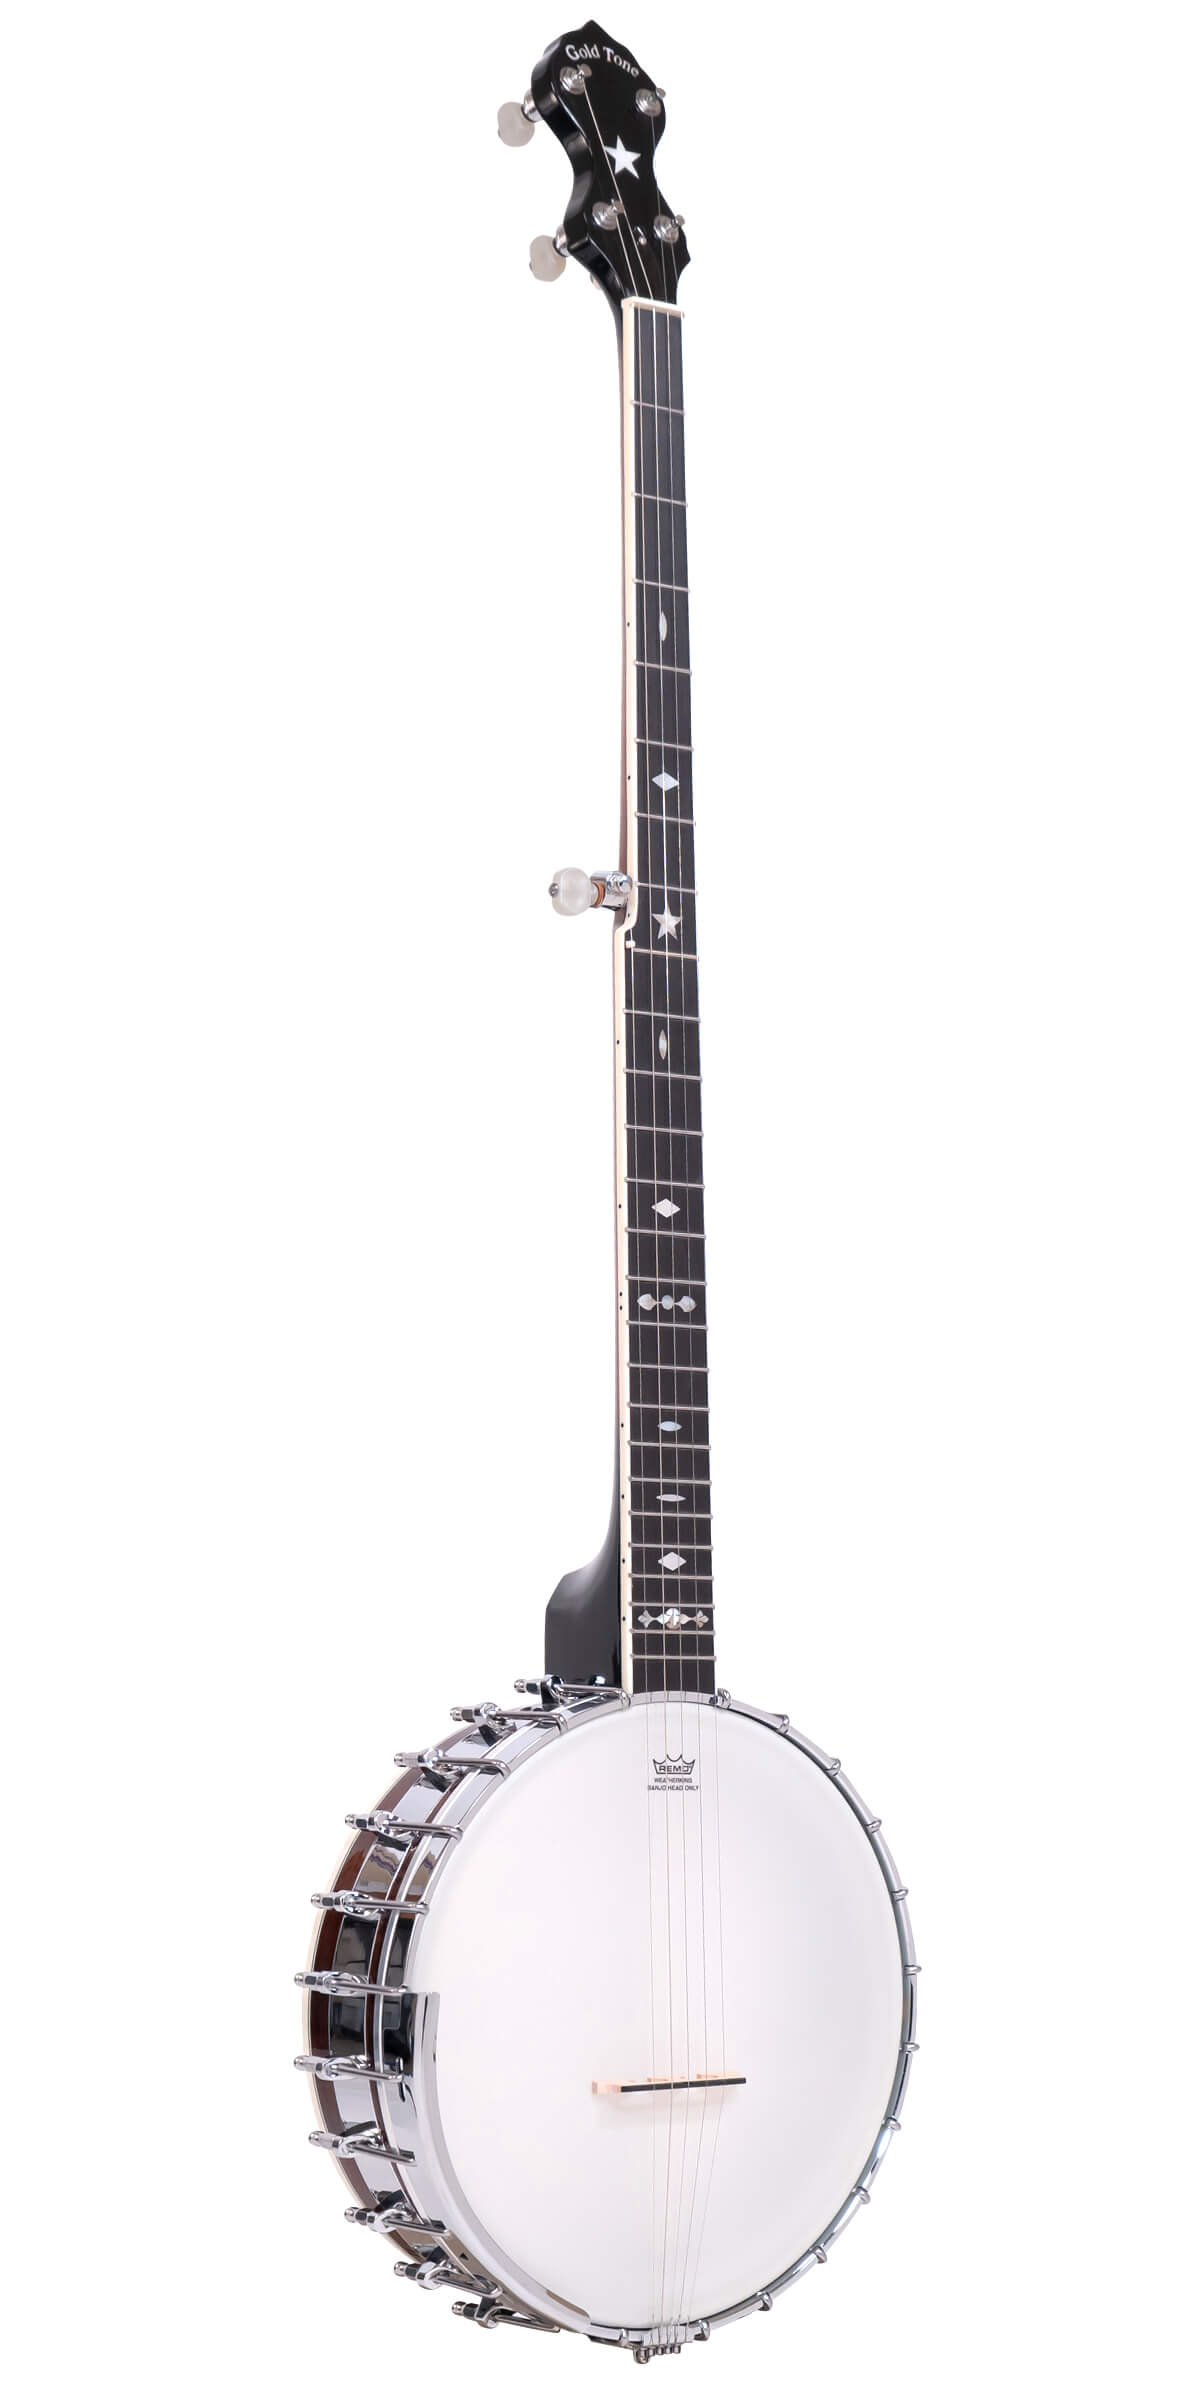 OT-800LN: Old Time Long Neck Banjo